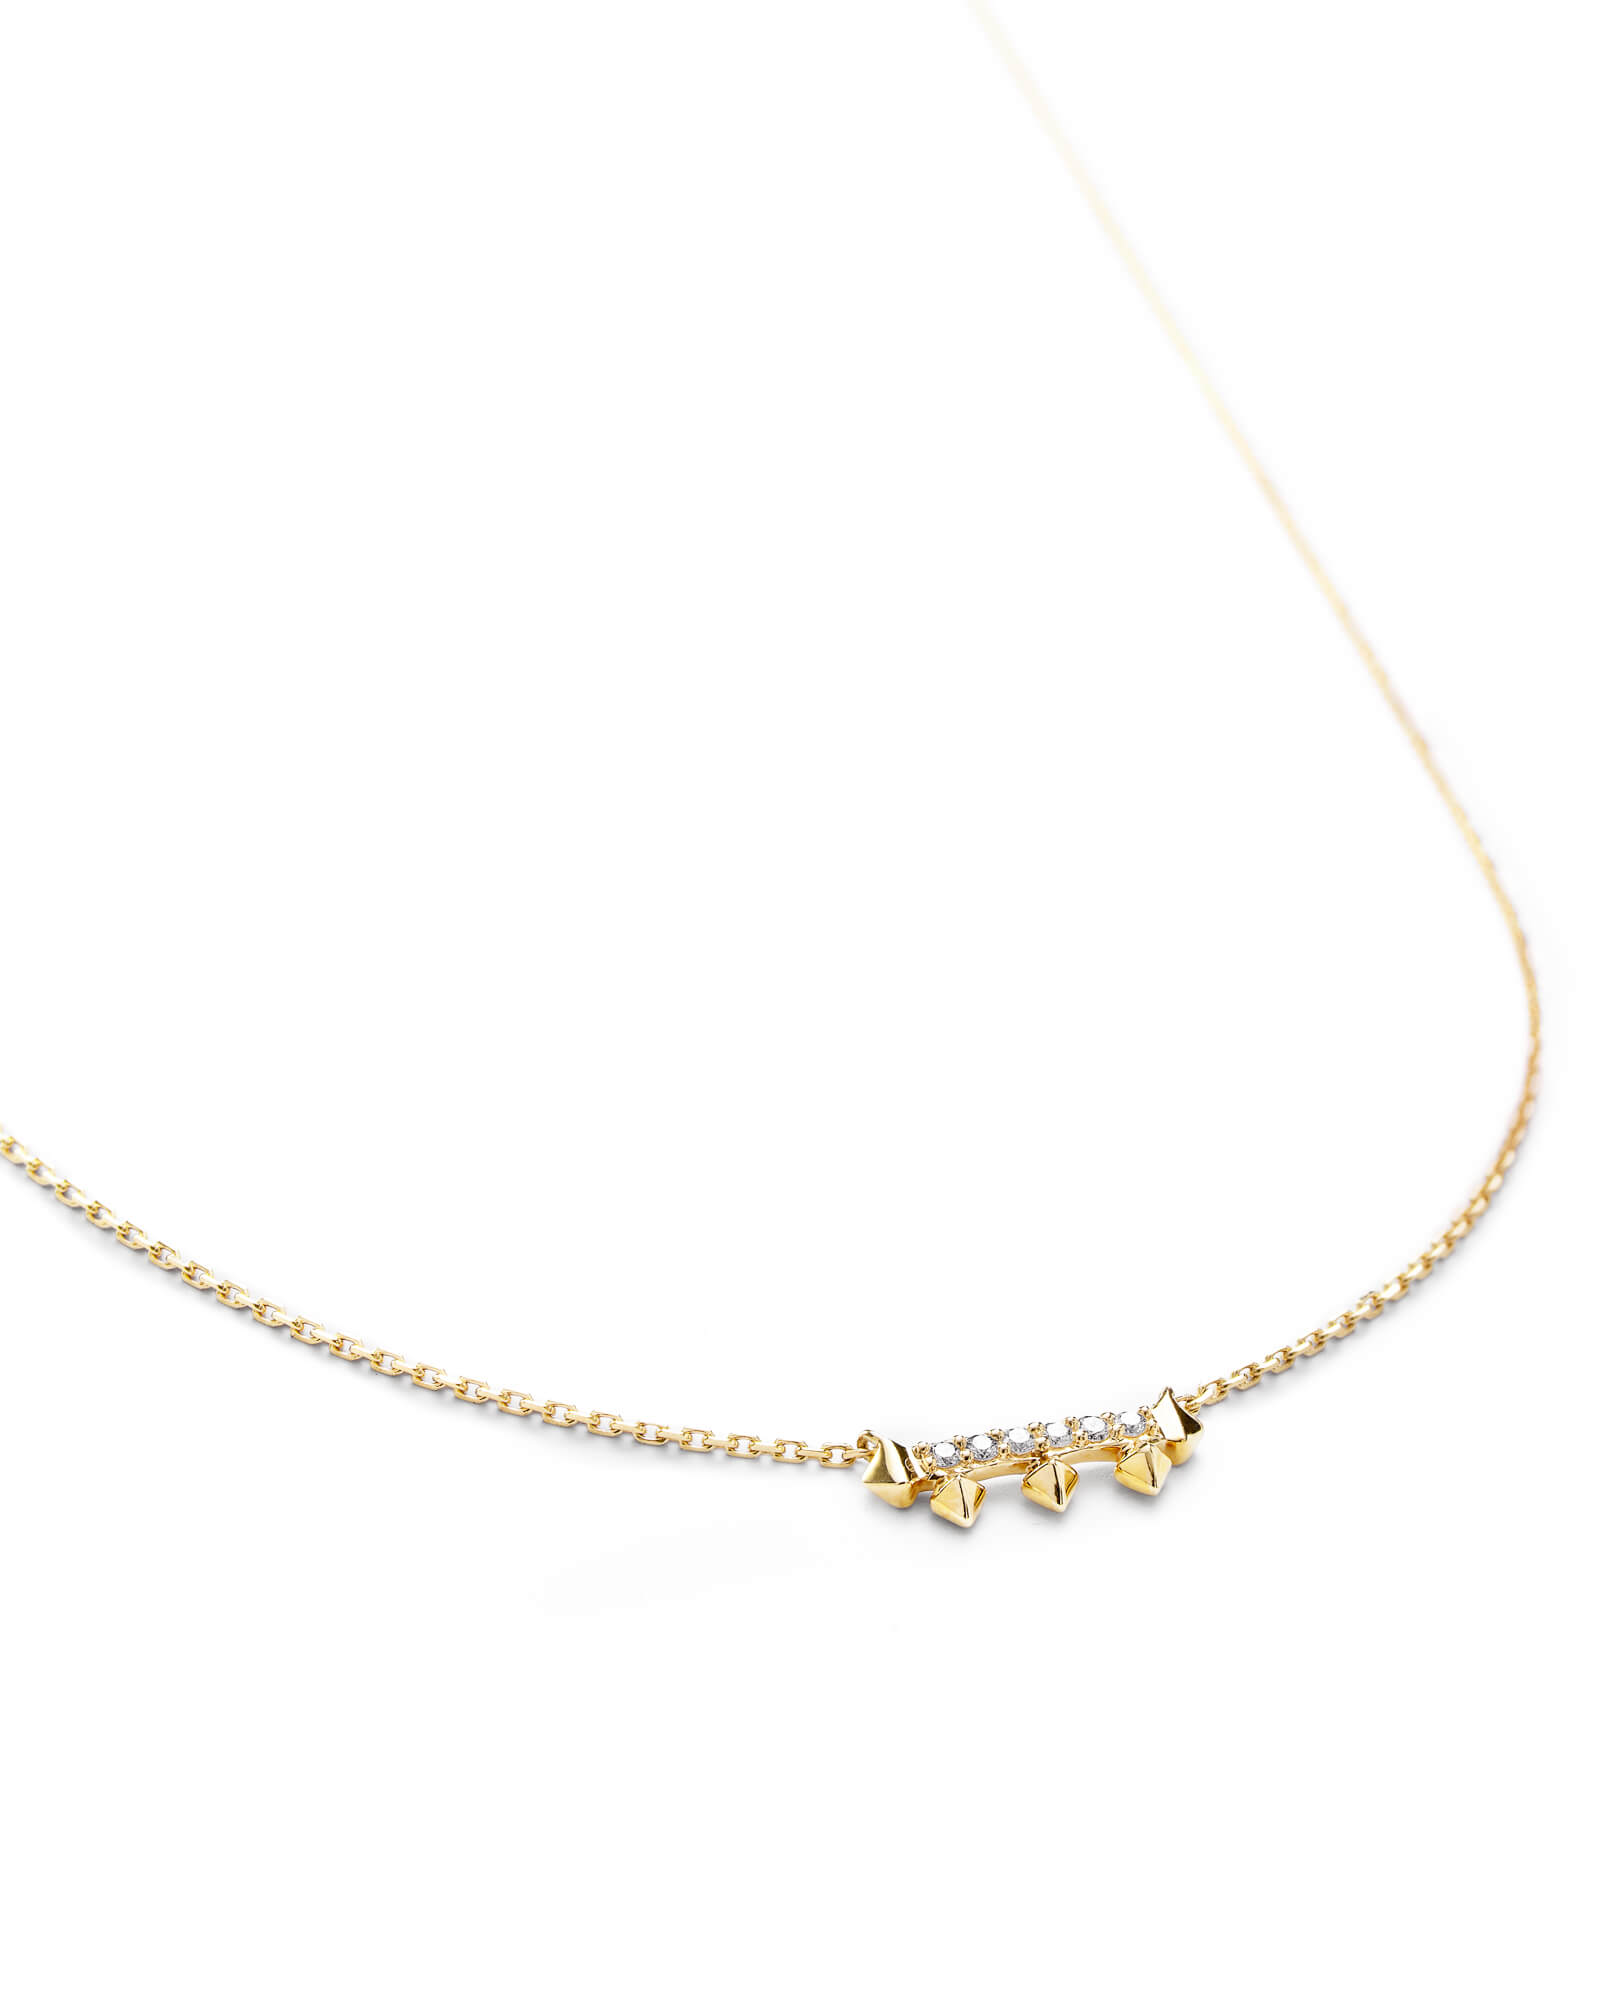 Katy Pendant Necklace in White Diamond and 14k Yellow Gold